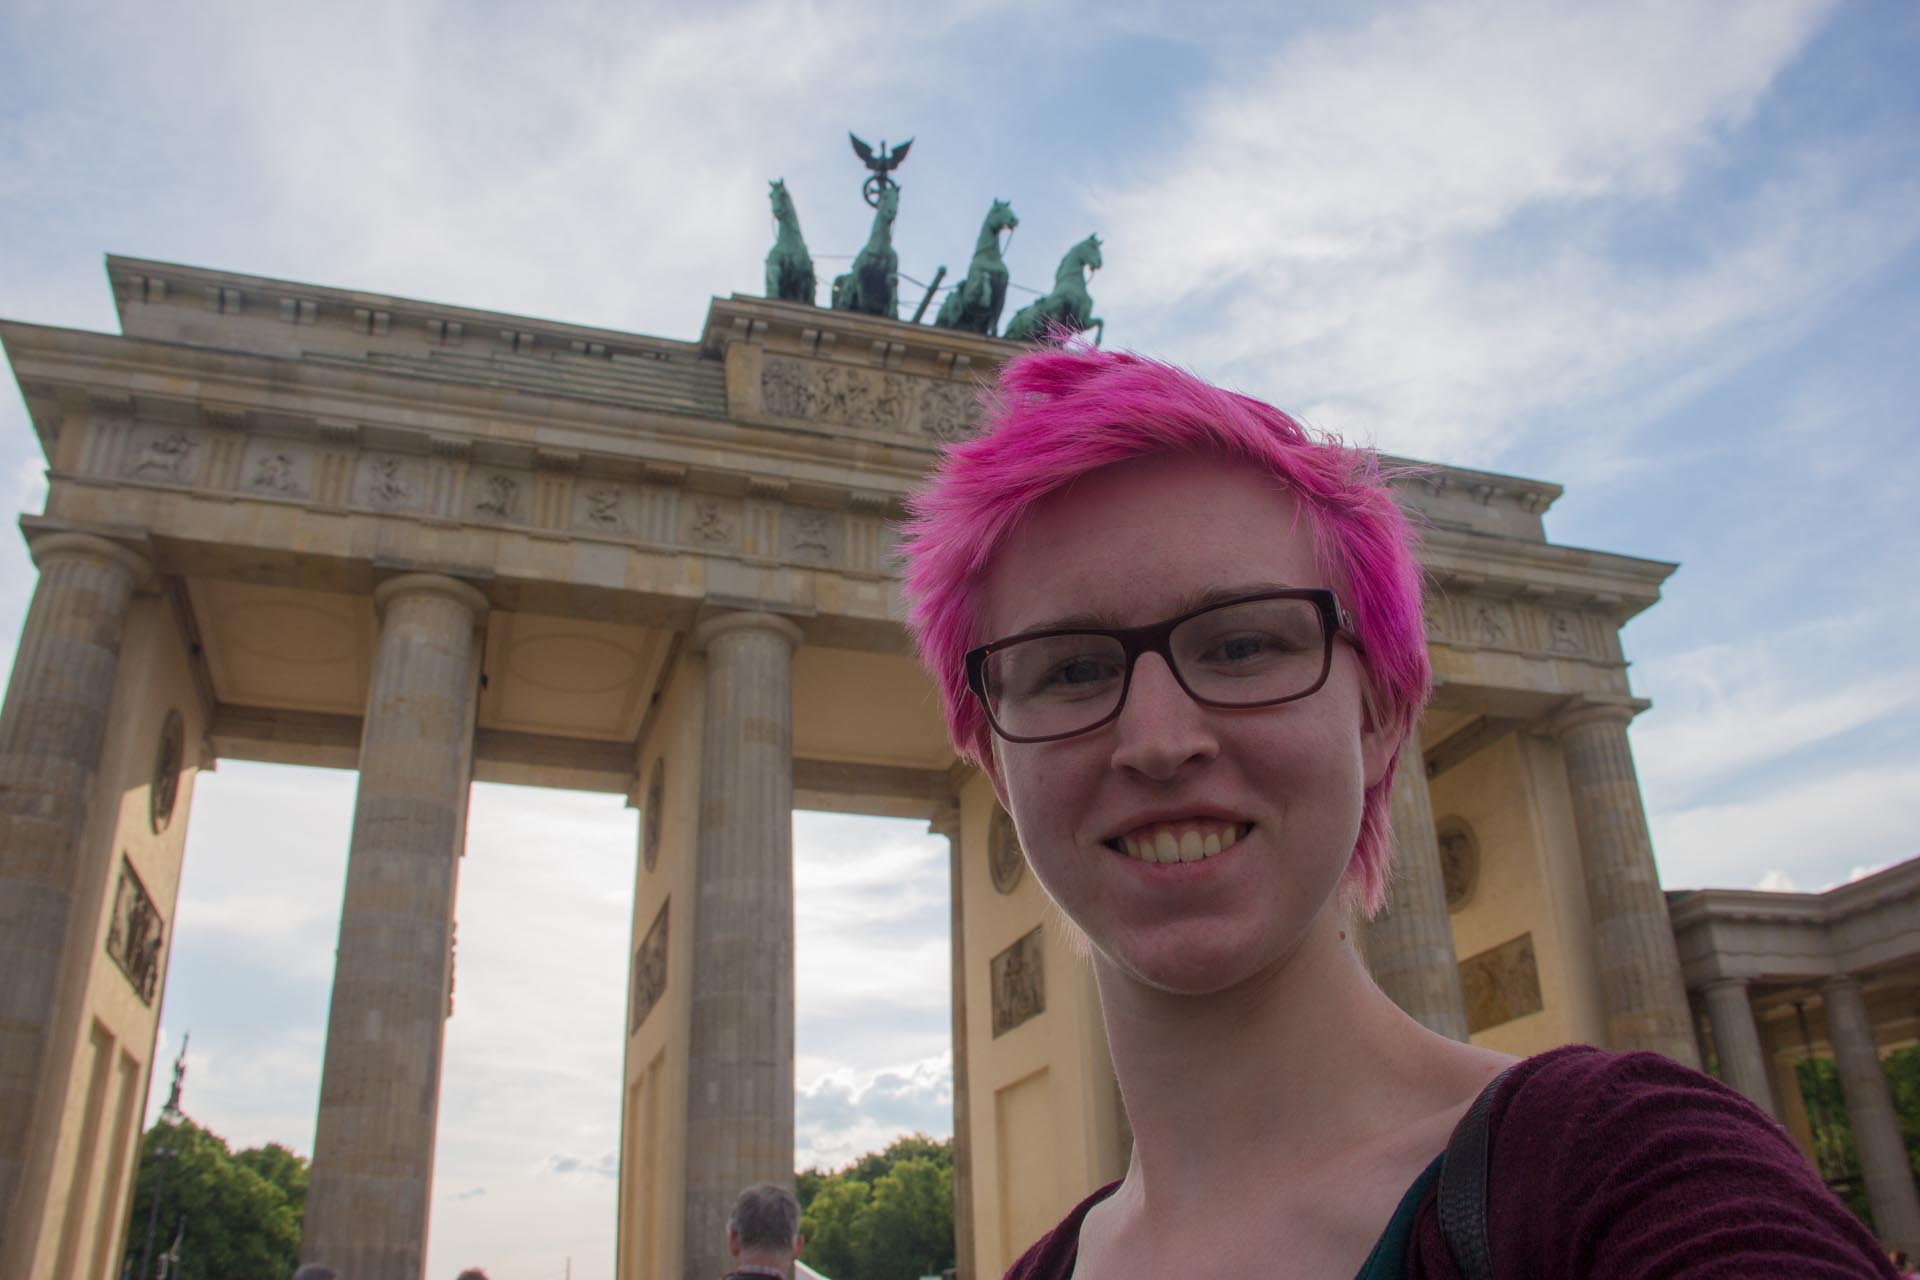 Selfies at the Brandenburg Gate!